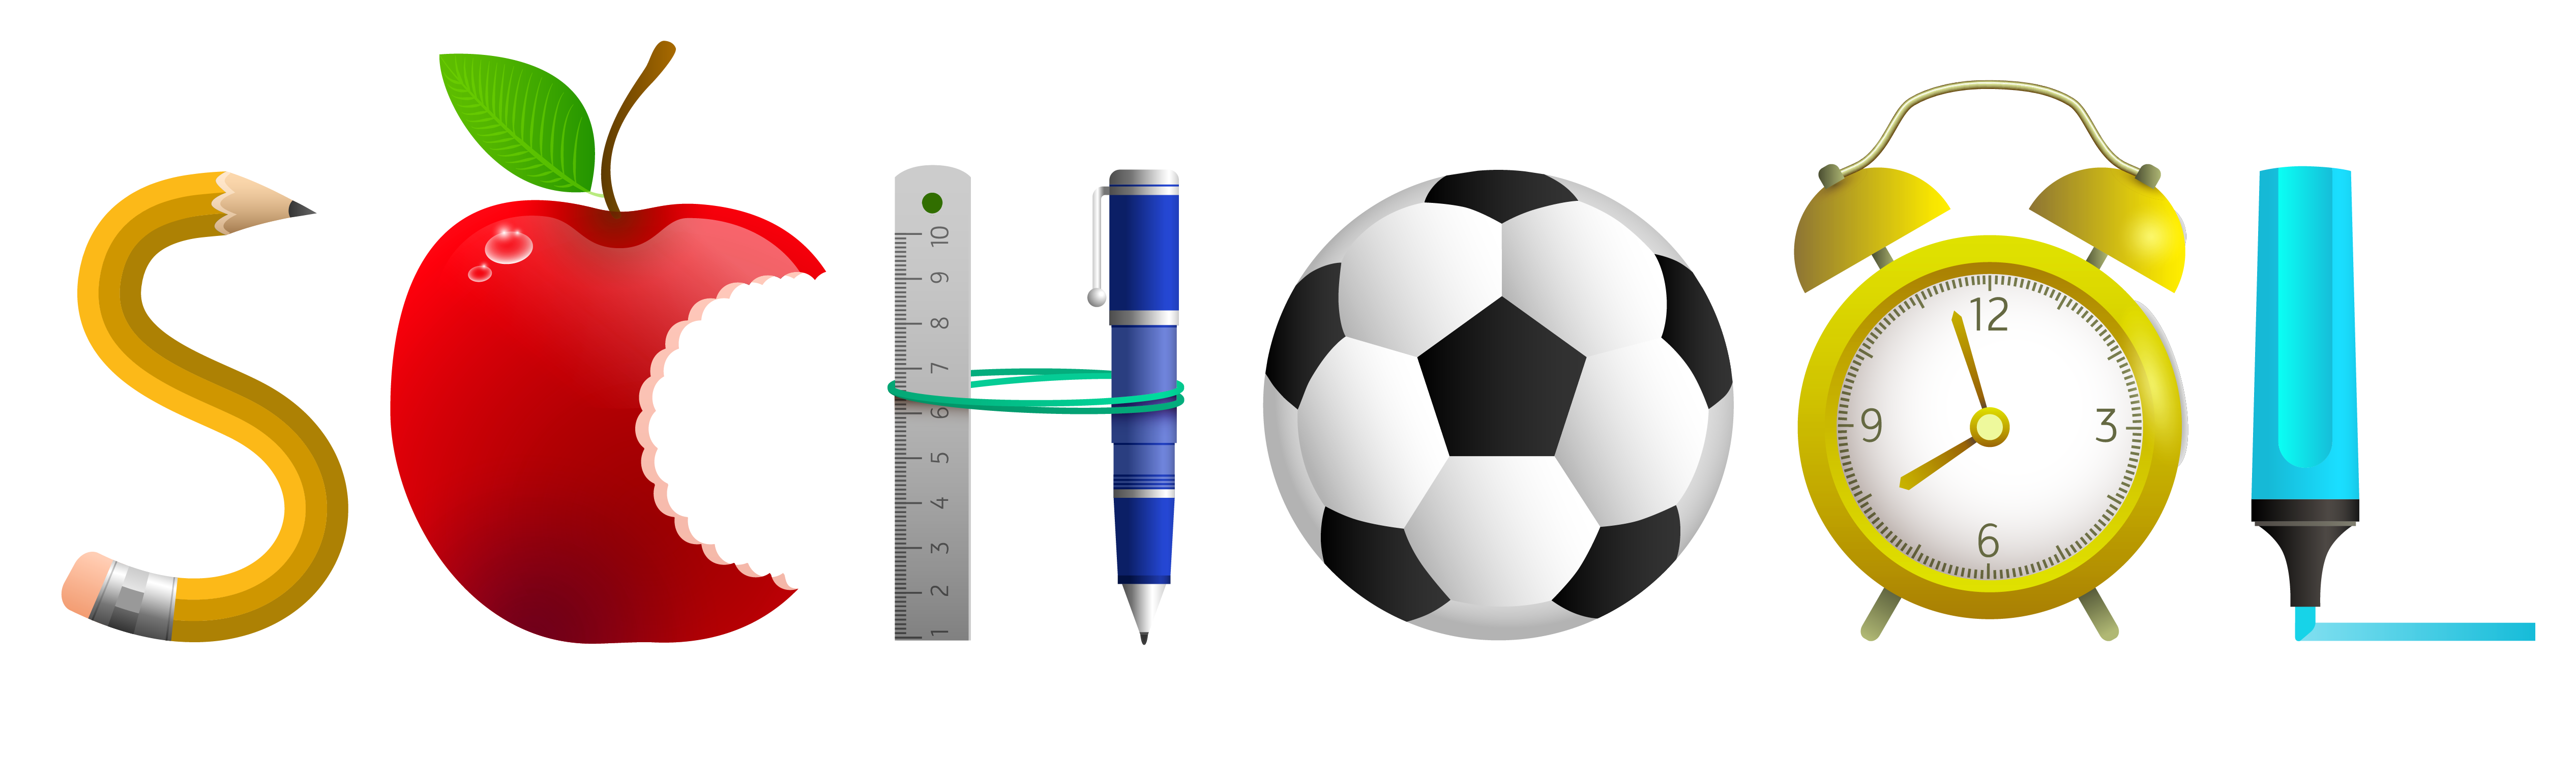 Football field ruler clipart. School label png picture